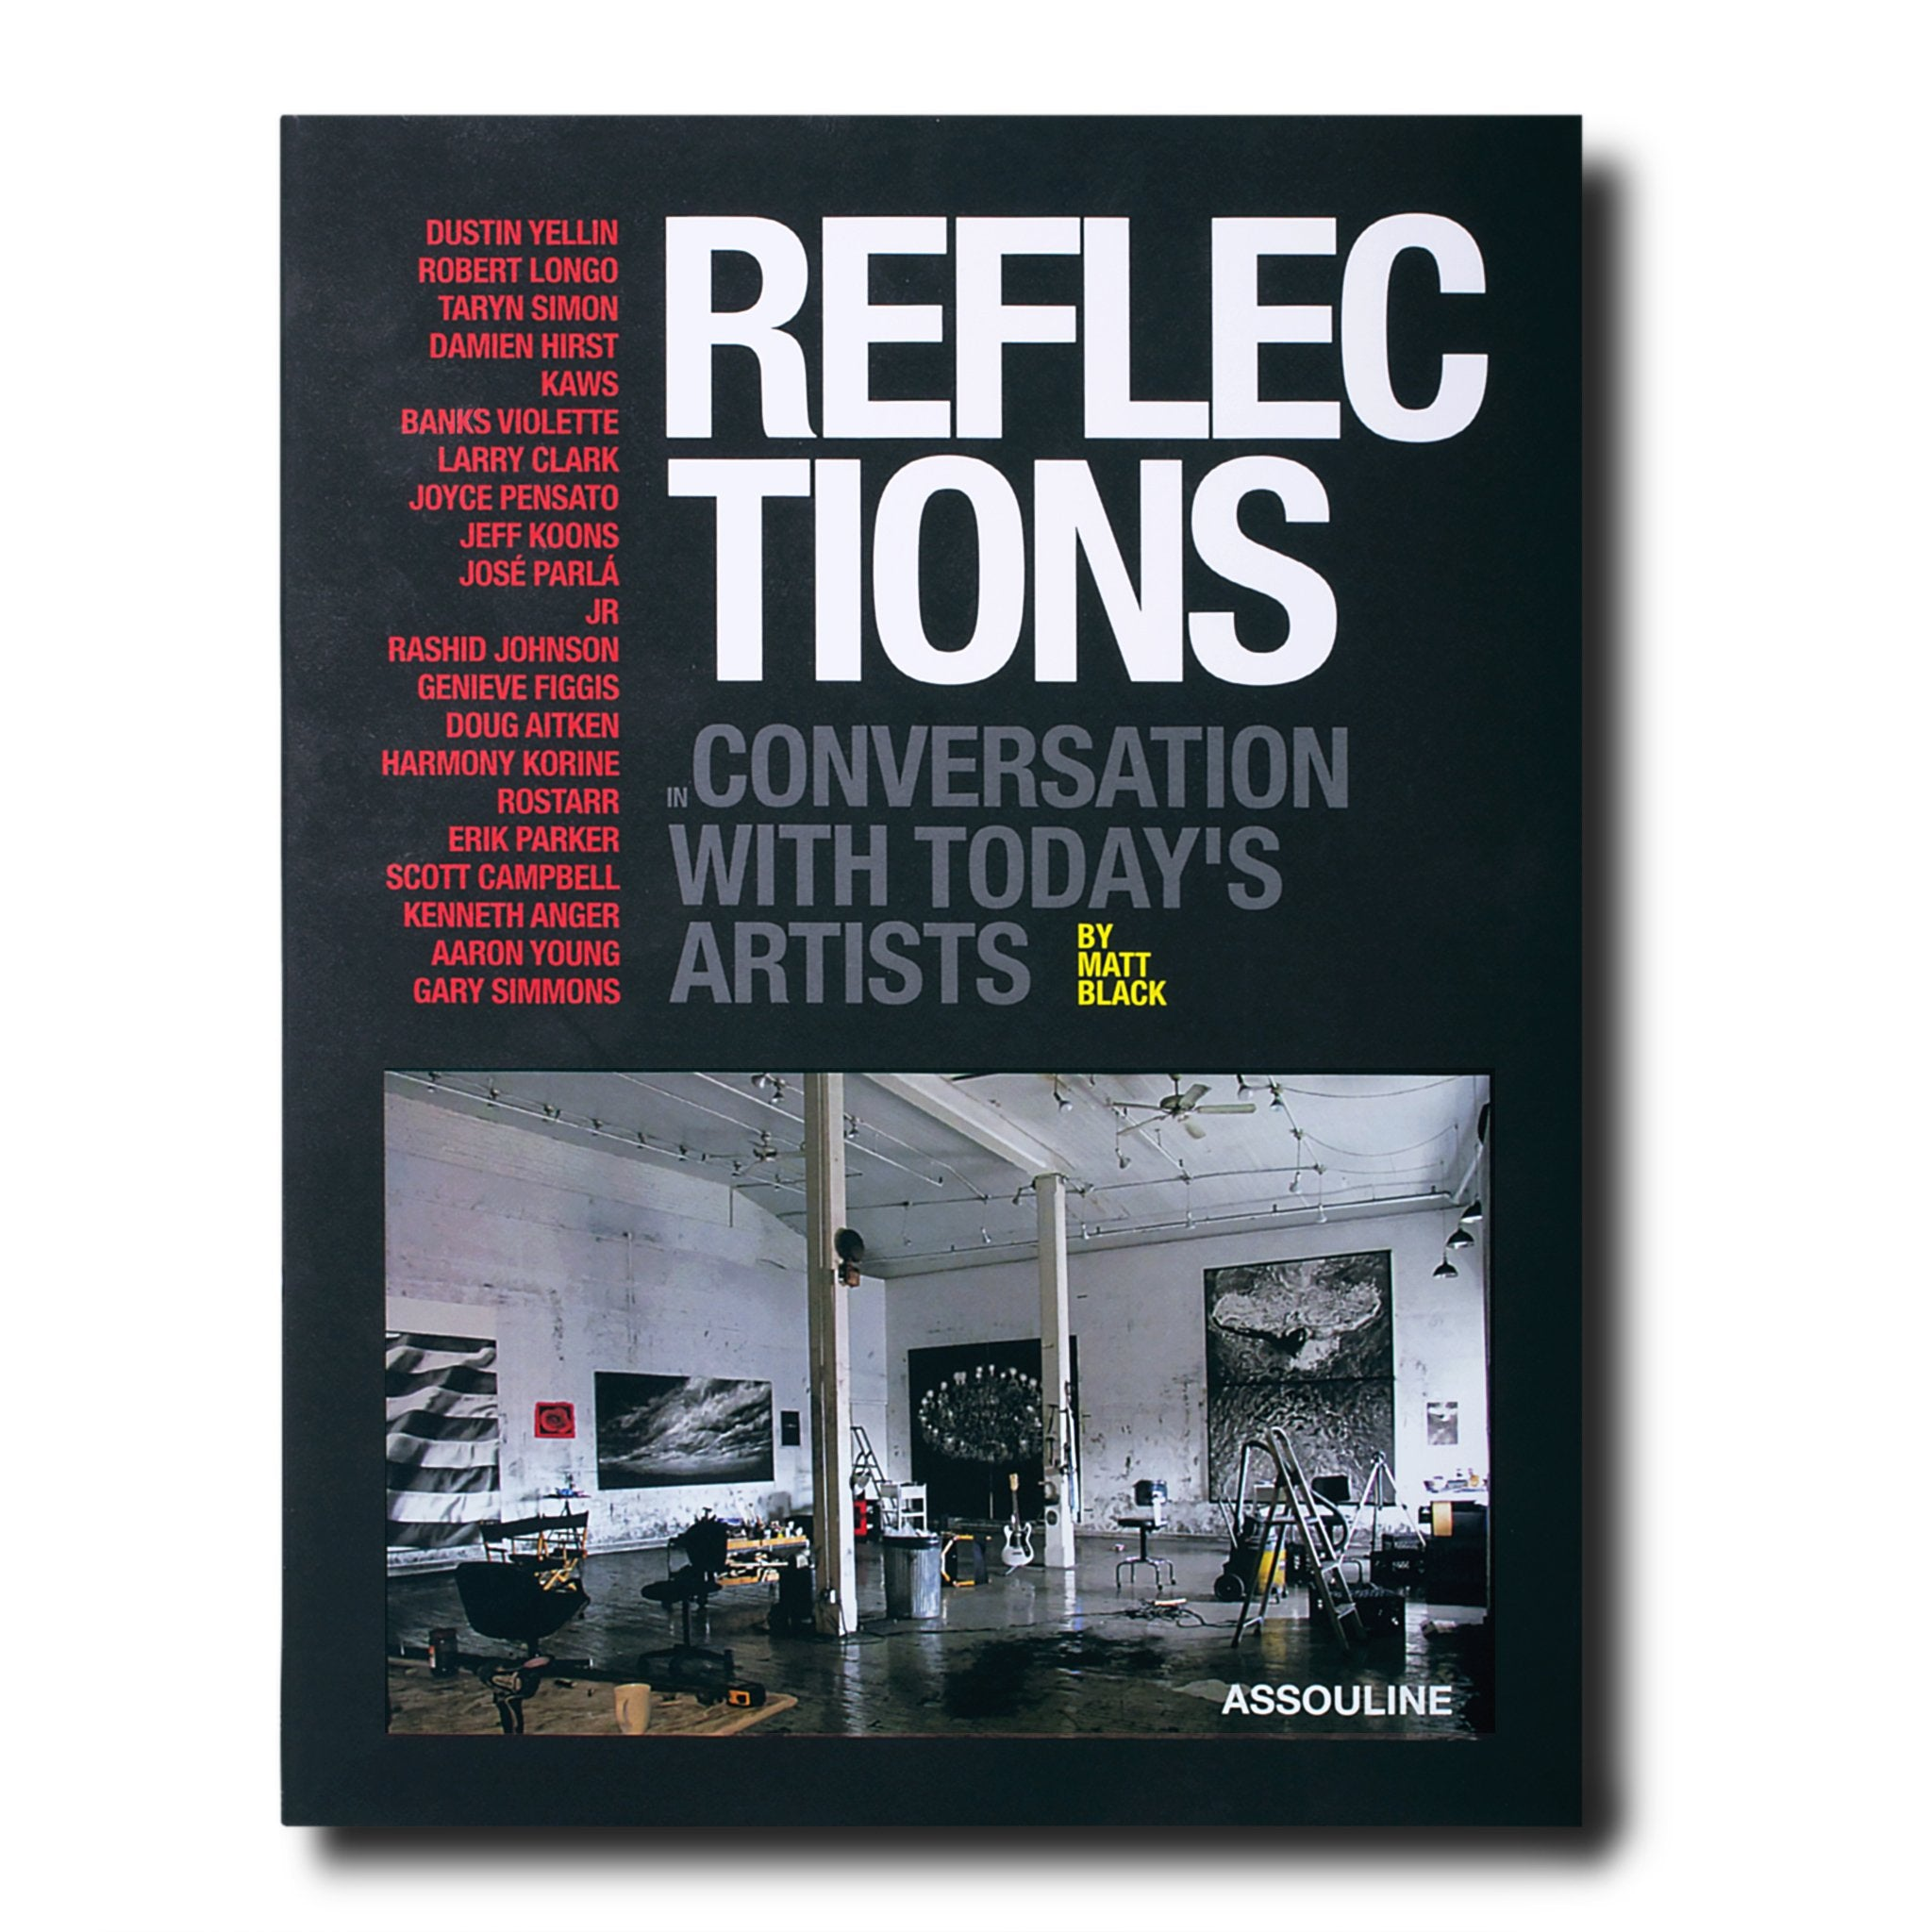 Assouline Books Reflections by Matt Black